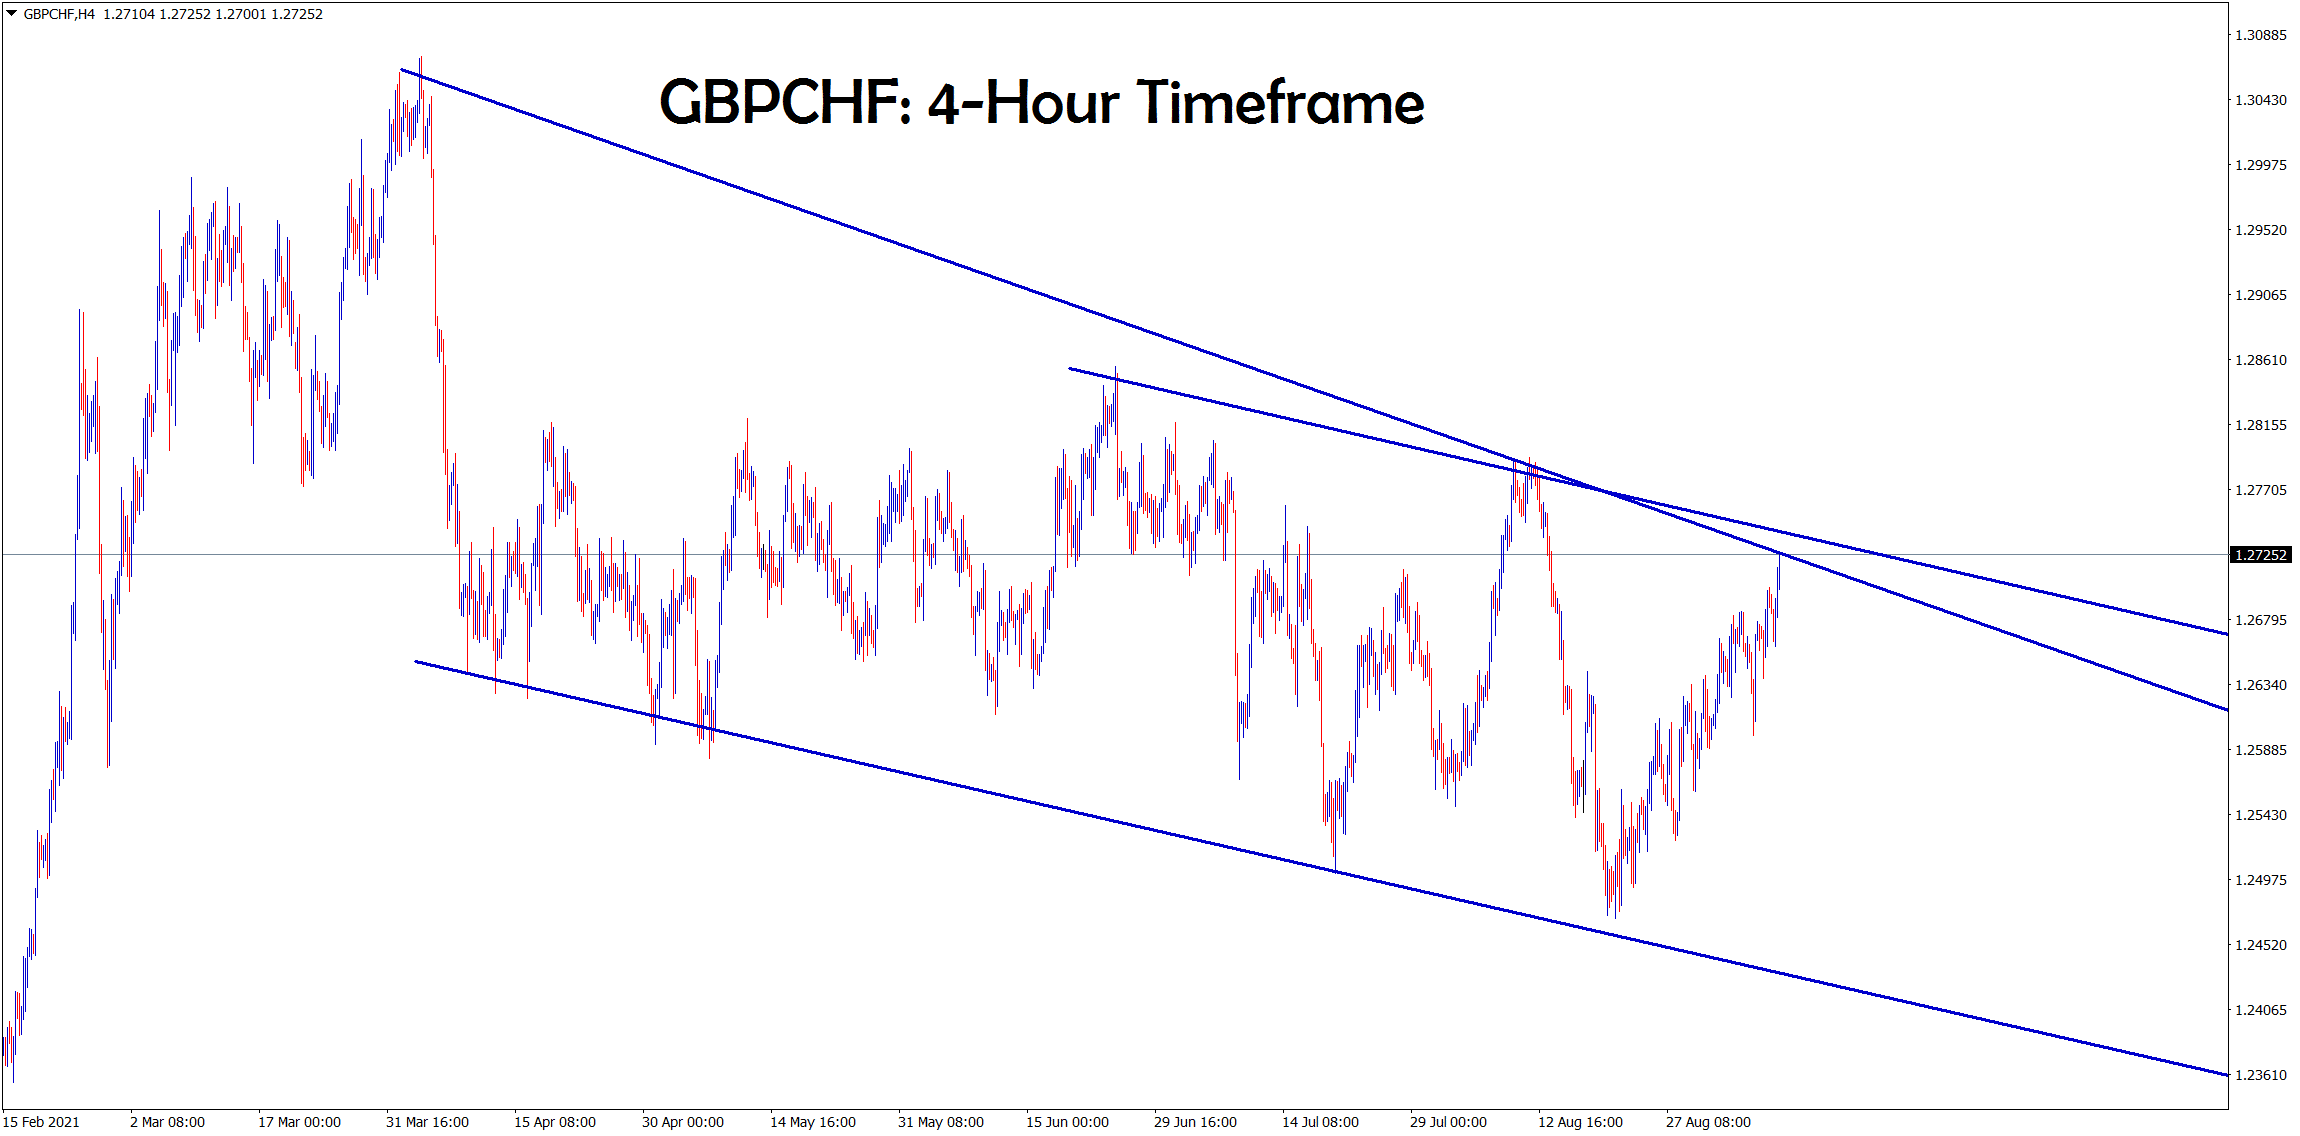 GBPCHF hits the lower high of the downtrend line